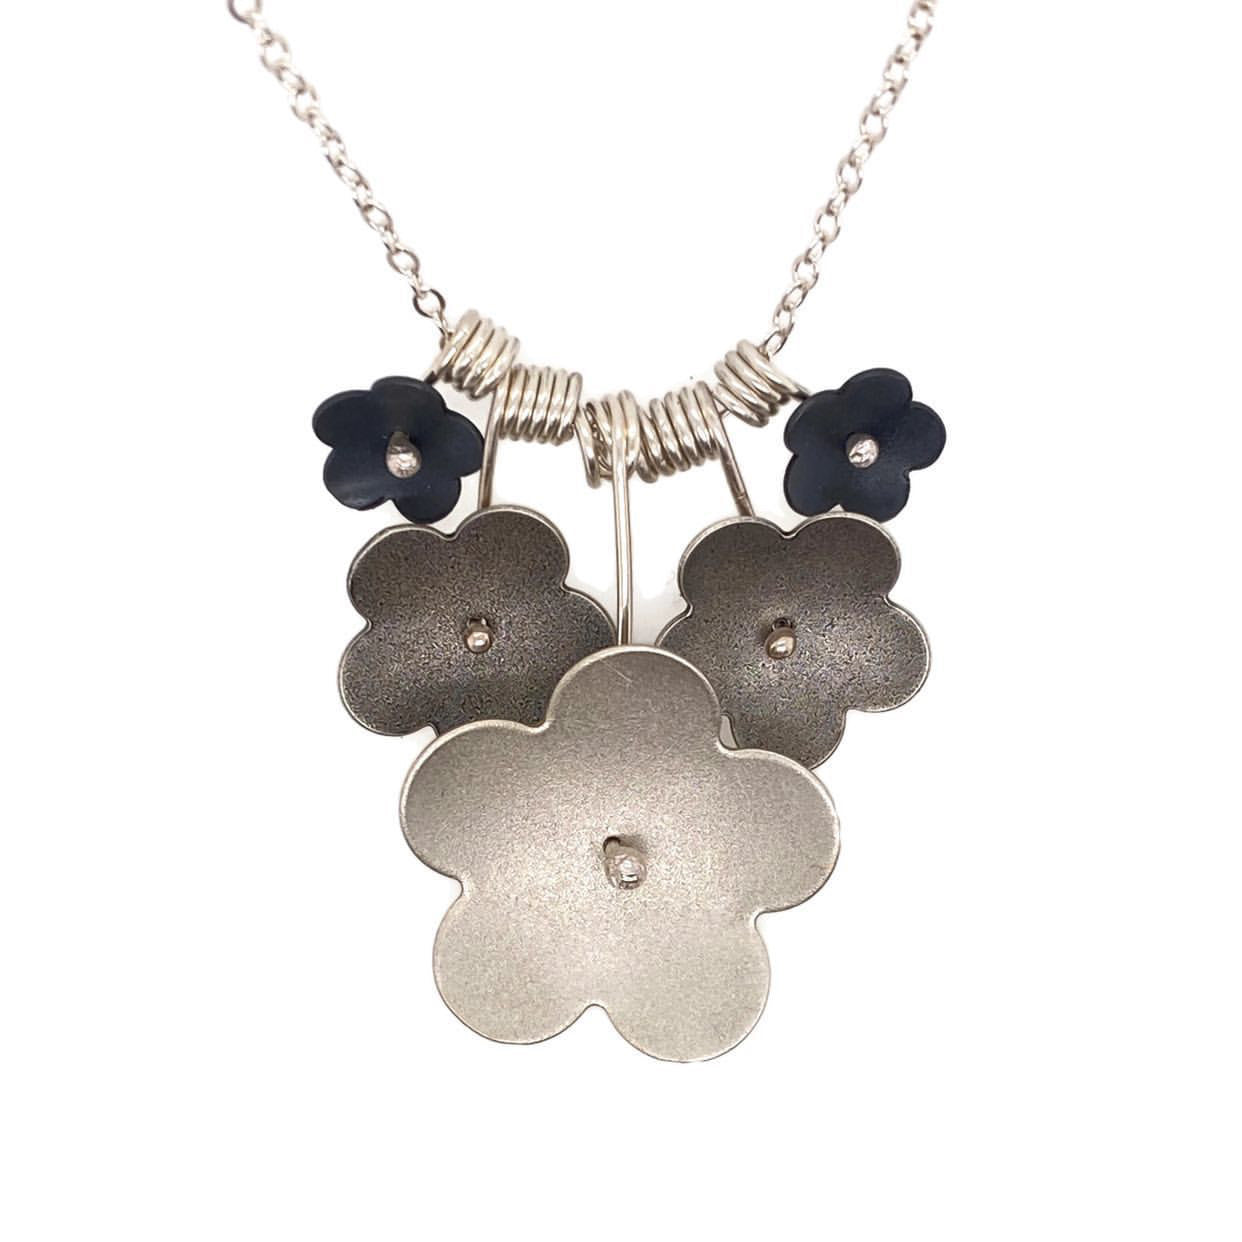 Ombrè Forget-Me-Not Necklace